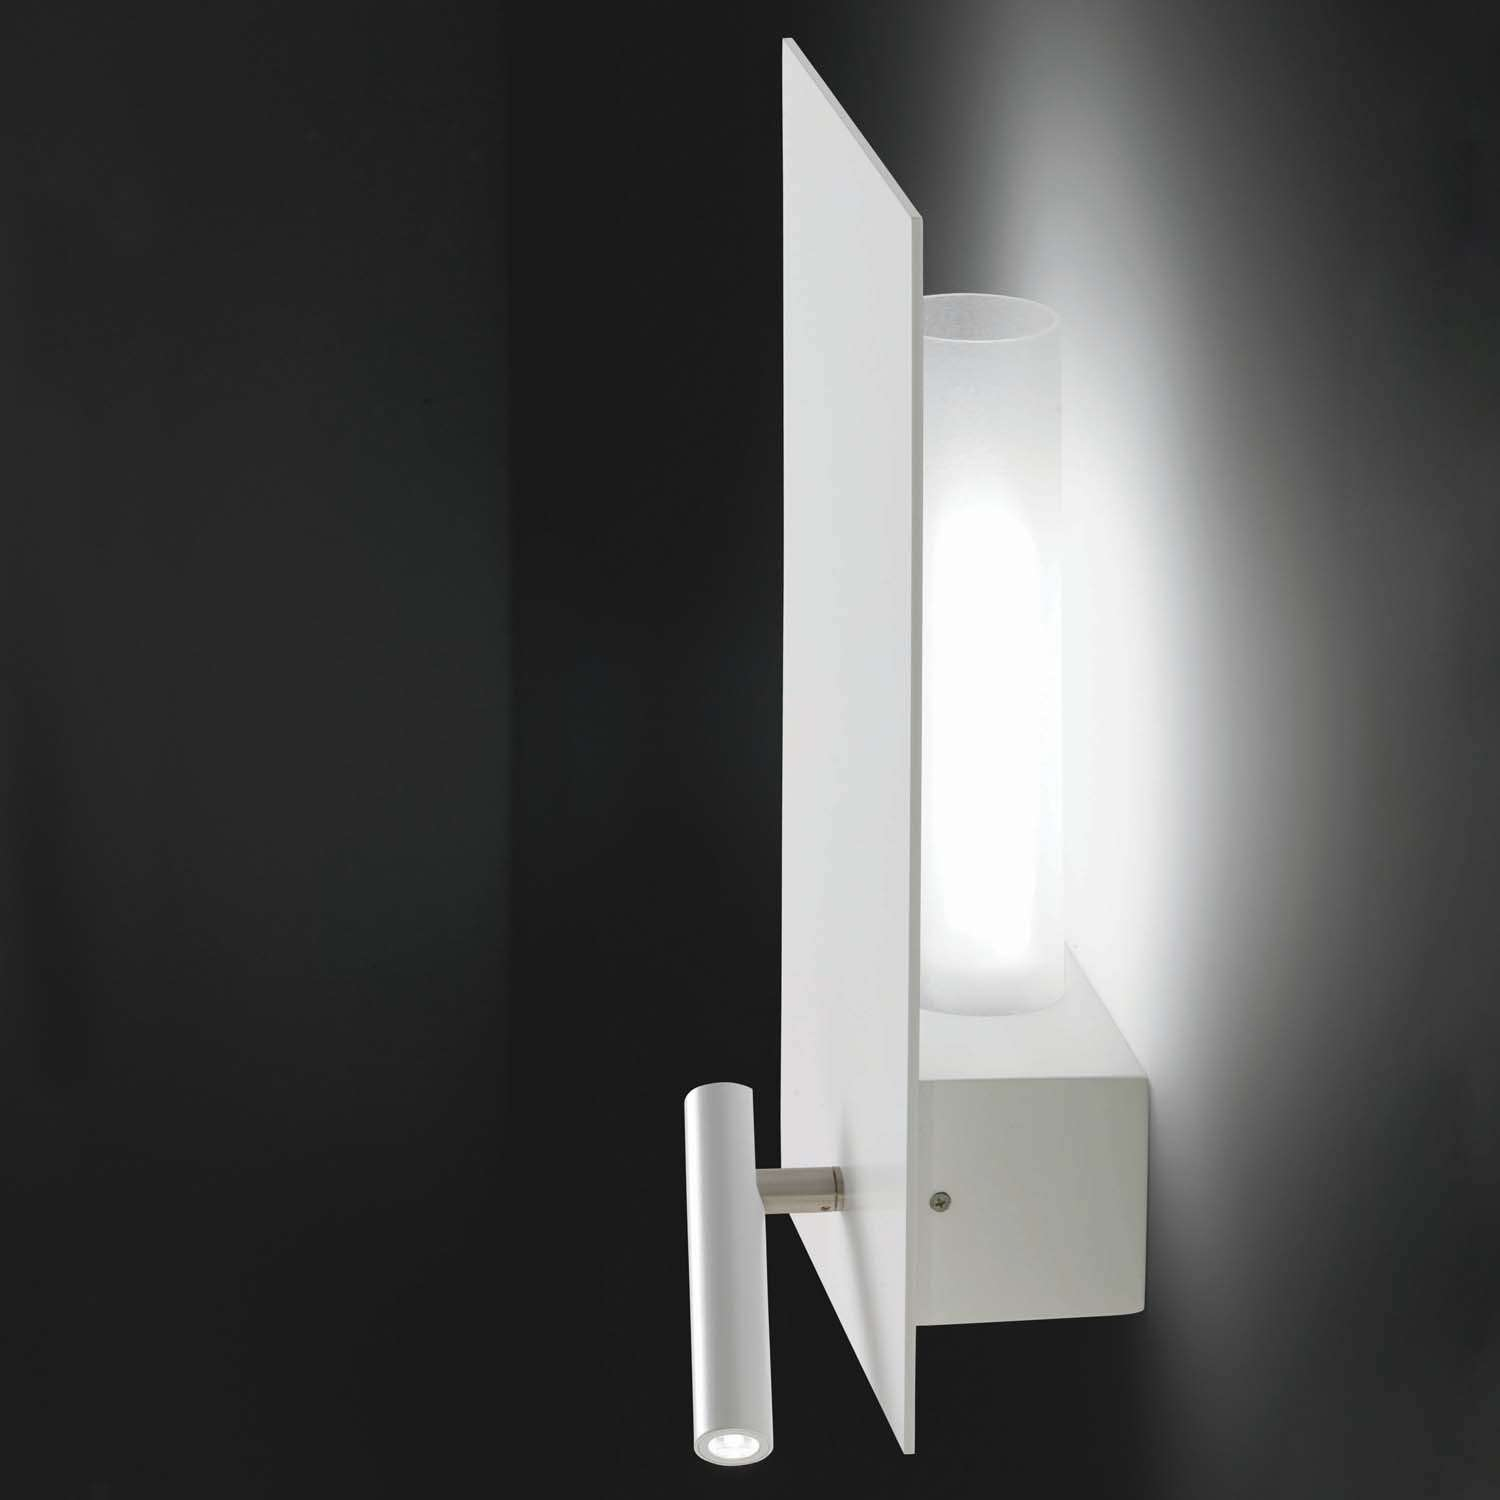 Image of: Flat Wall Sconce Shapes